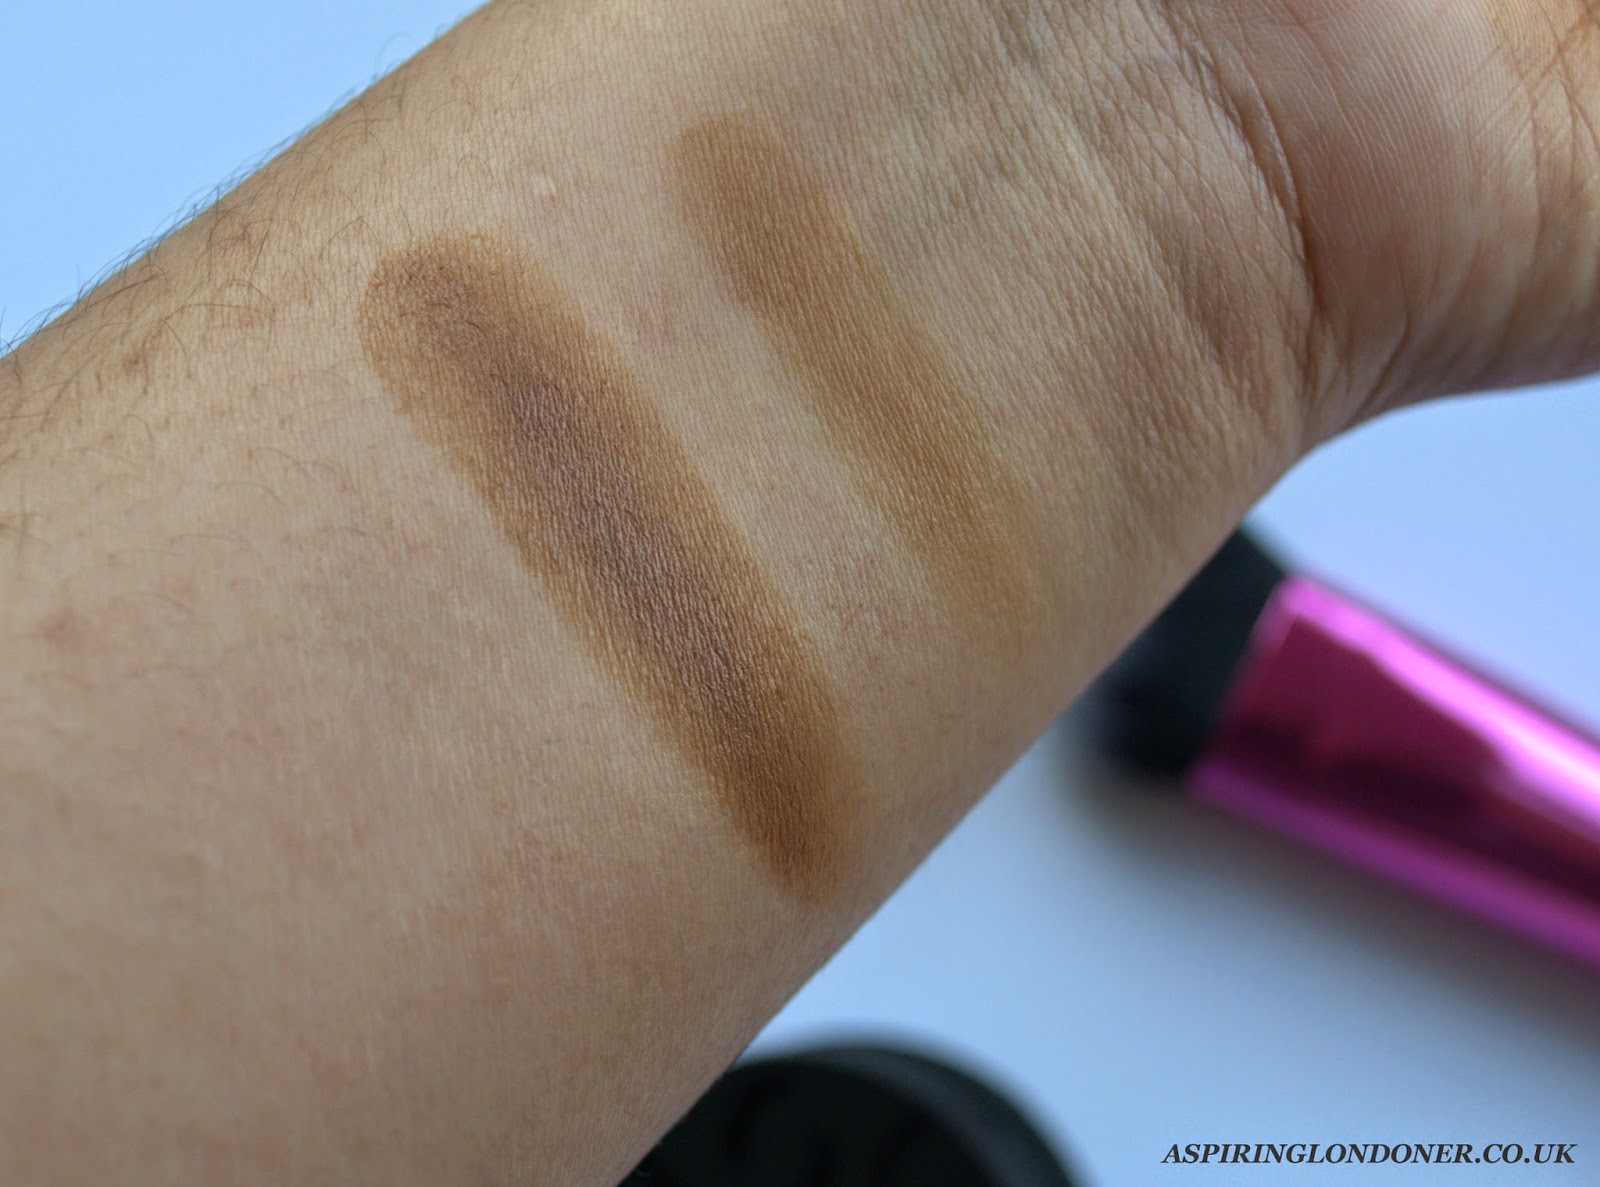 Topshop Contour Cream in Swerve Review + Swatch - Aspiring Londoner